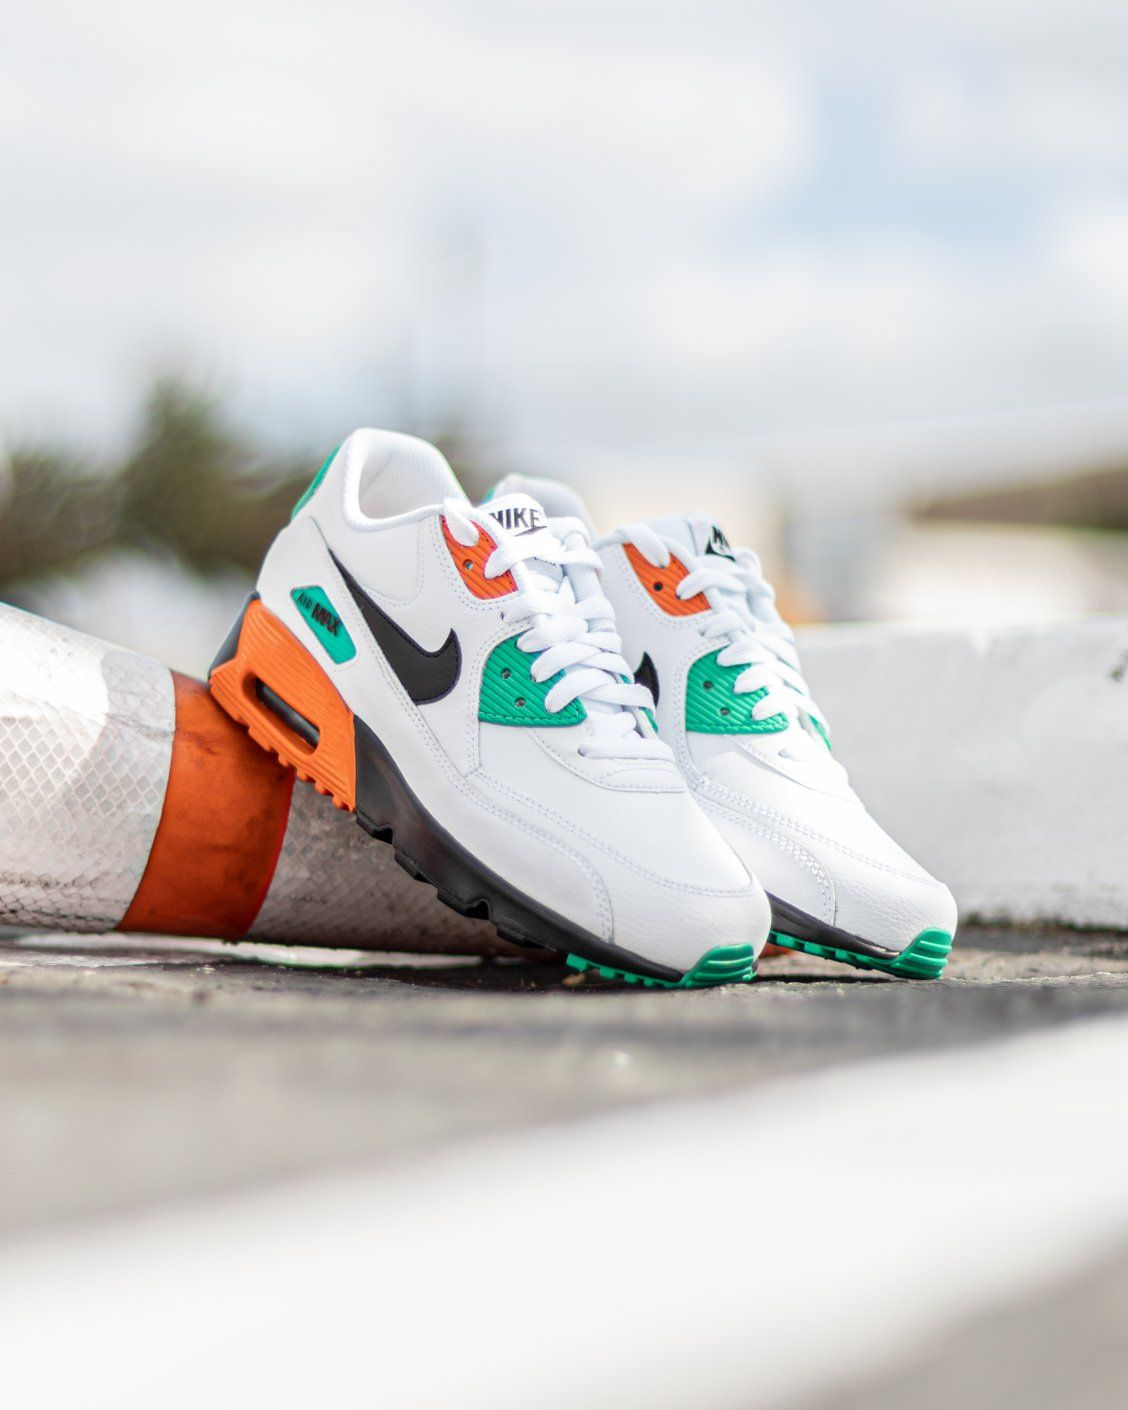 nike Air Max 90 yours online